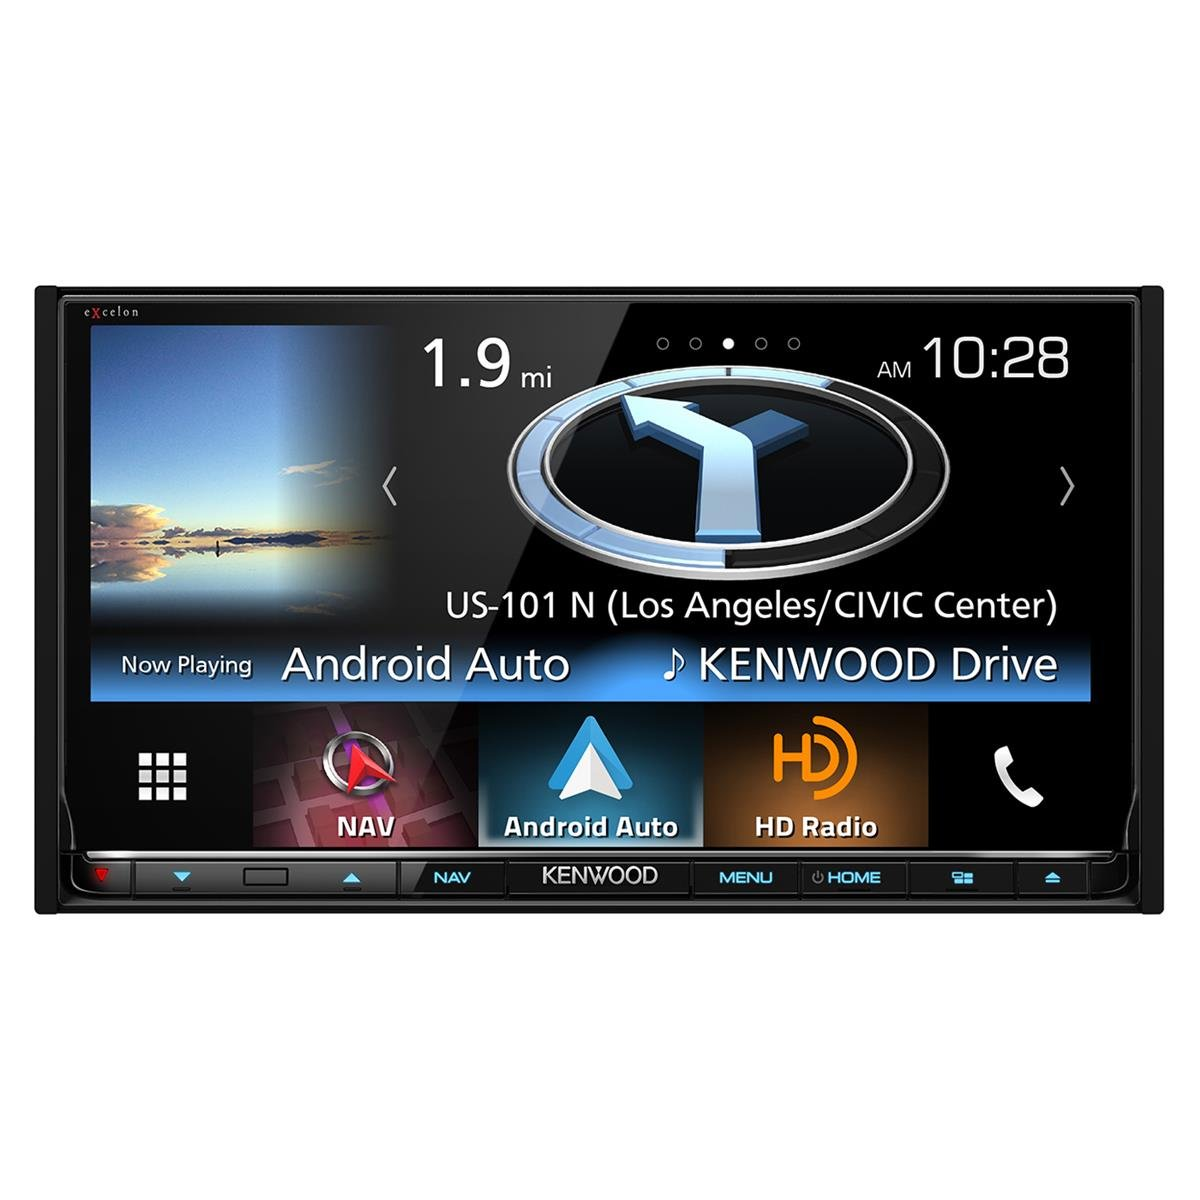 Kenwood DNX893S 6.95'' eXcelon Double-DIN AV Navigation System With Bluetooth